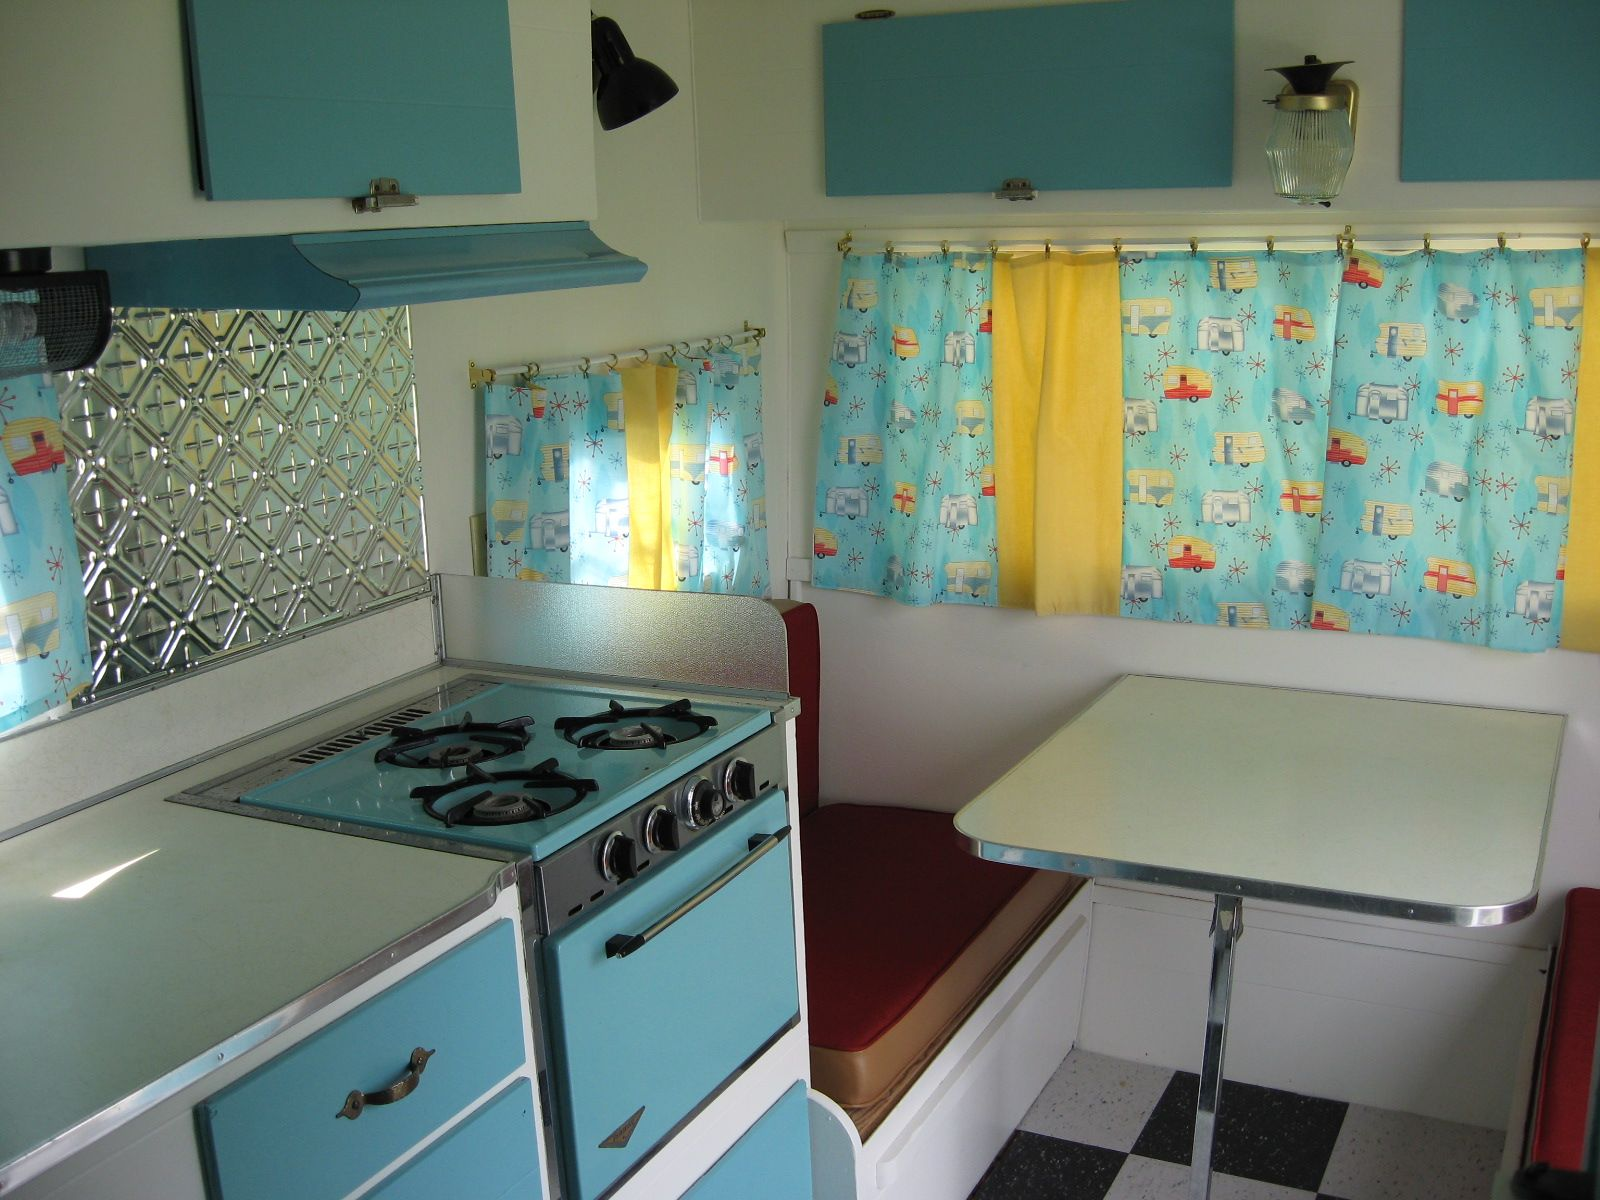 Camper Trailer Kitchen Designs Interior Photos Of Retro Vintage Camper Trailers Google Search